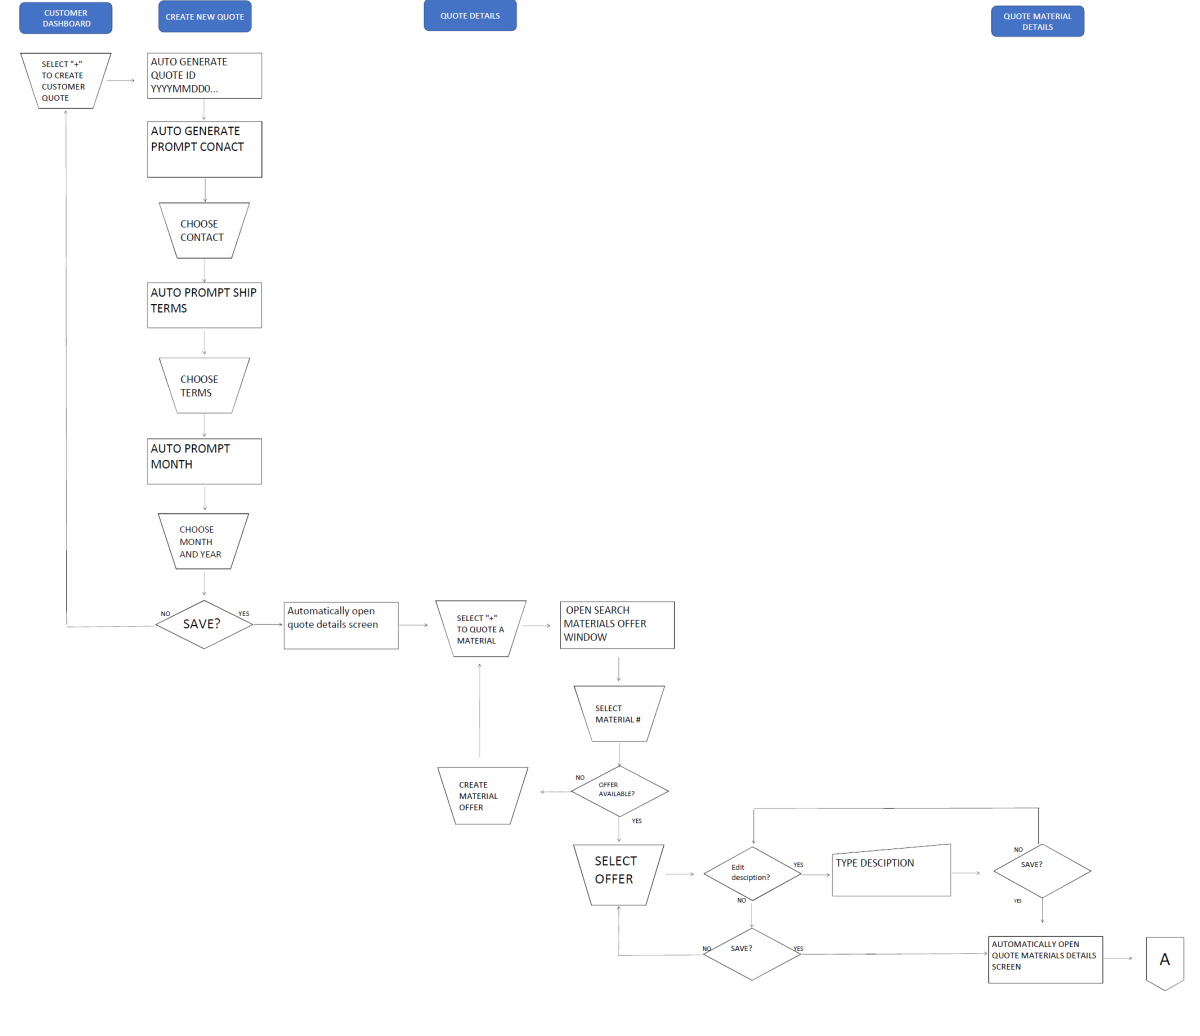 Example 2 Flow Chart